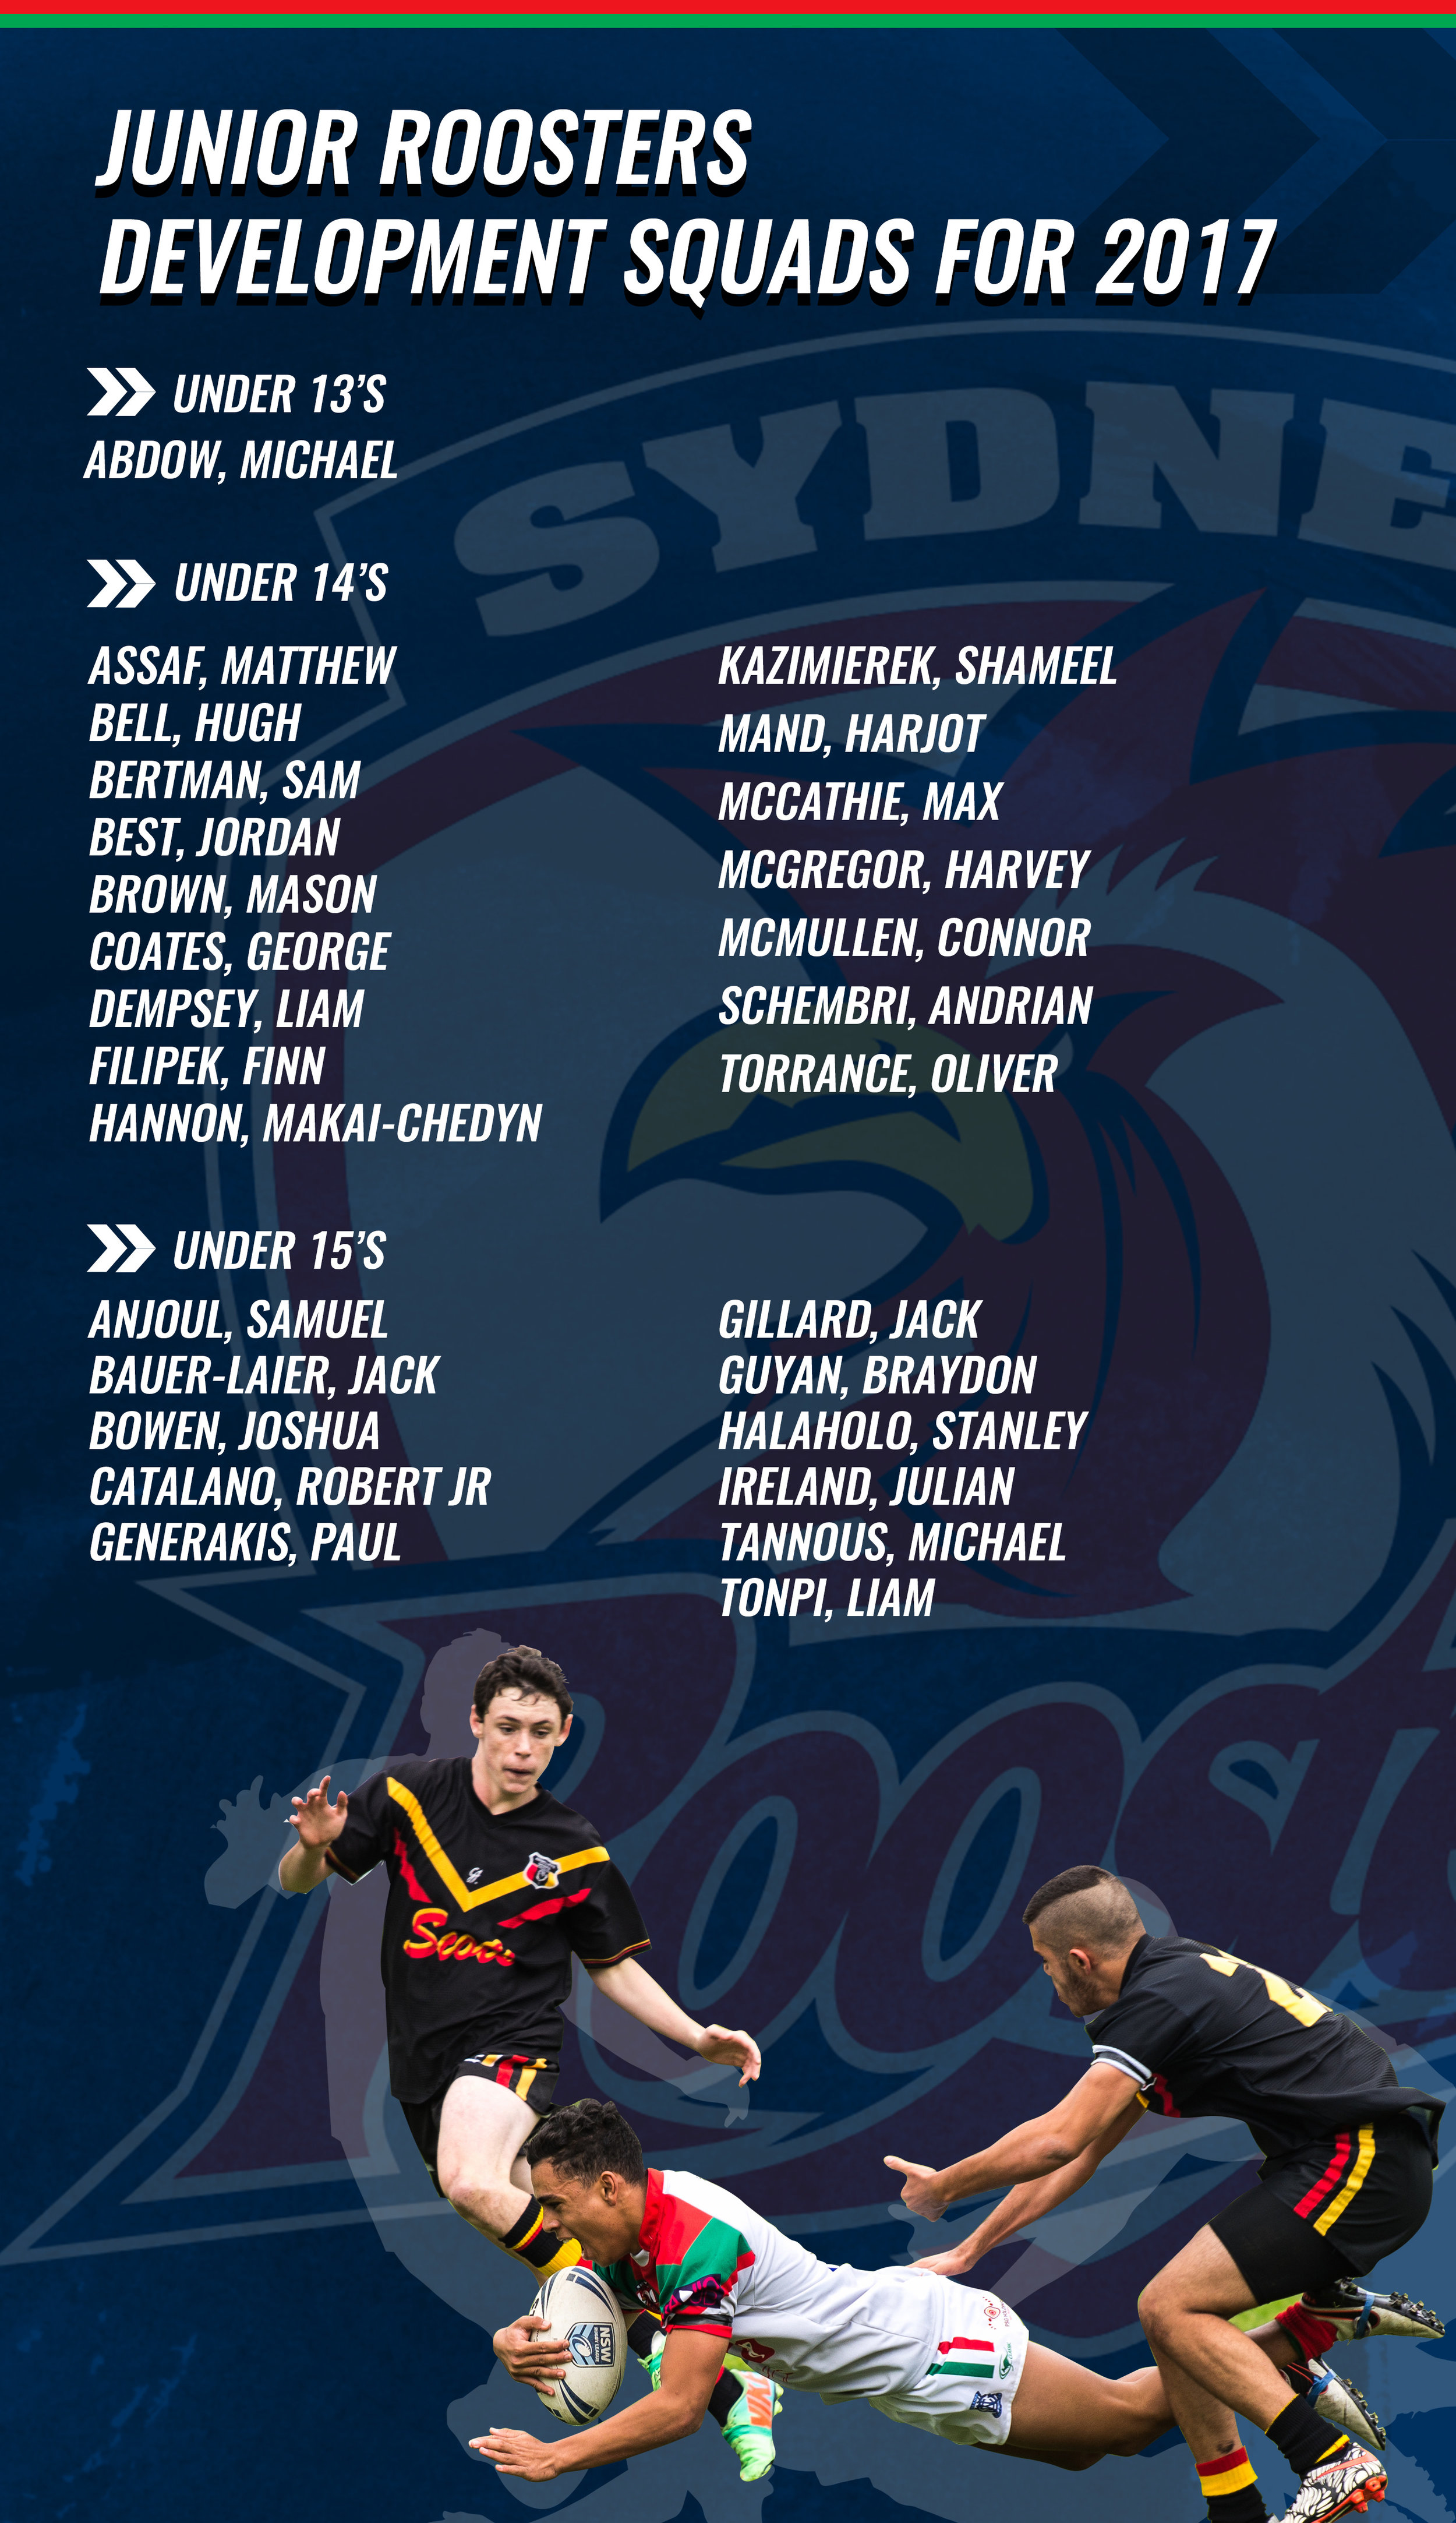 The Sydney Roosters have announced their Junior Roosters Development Squads for 2017 and the Paddington Colts wish to congratulate the following young Colts on their selection.